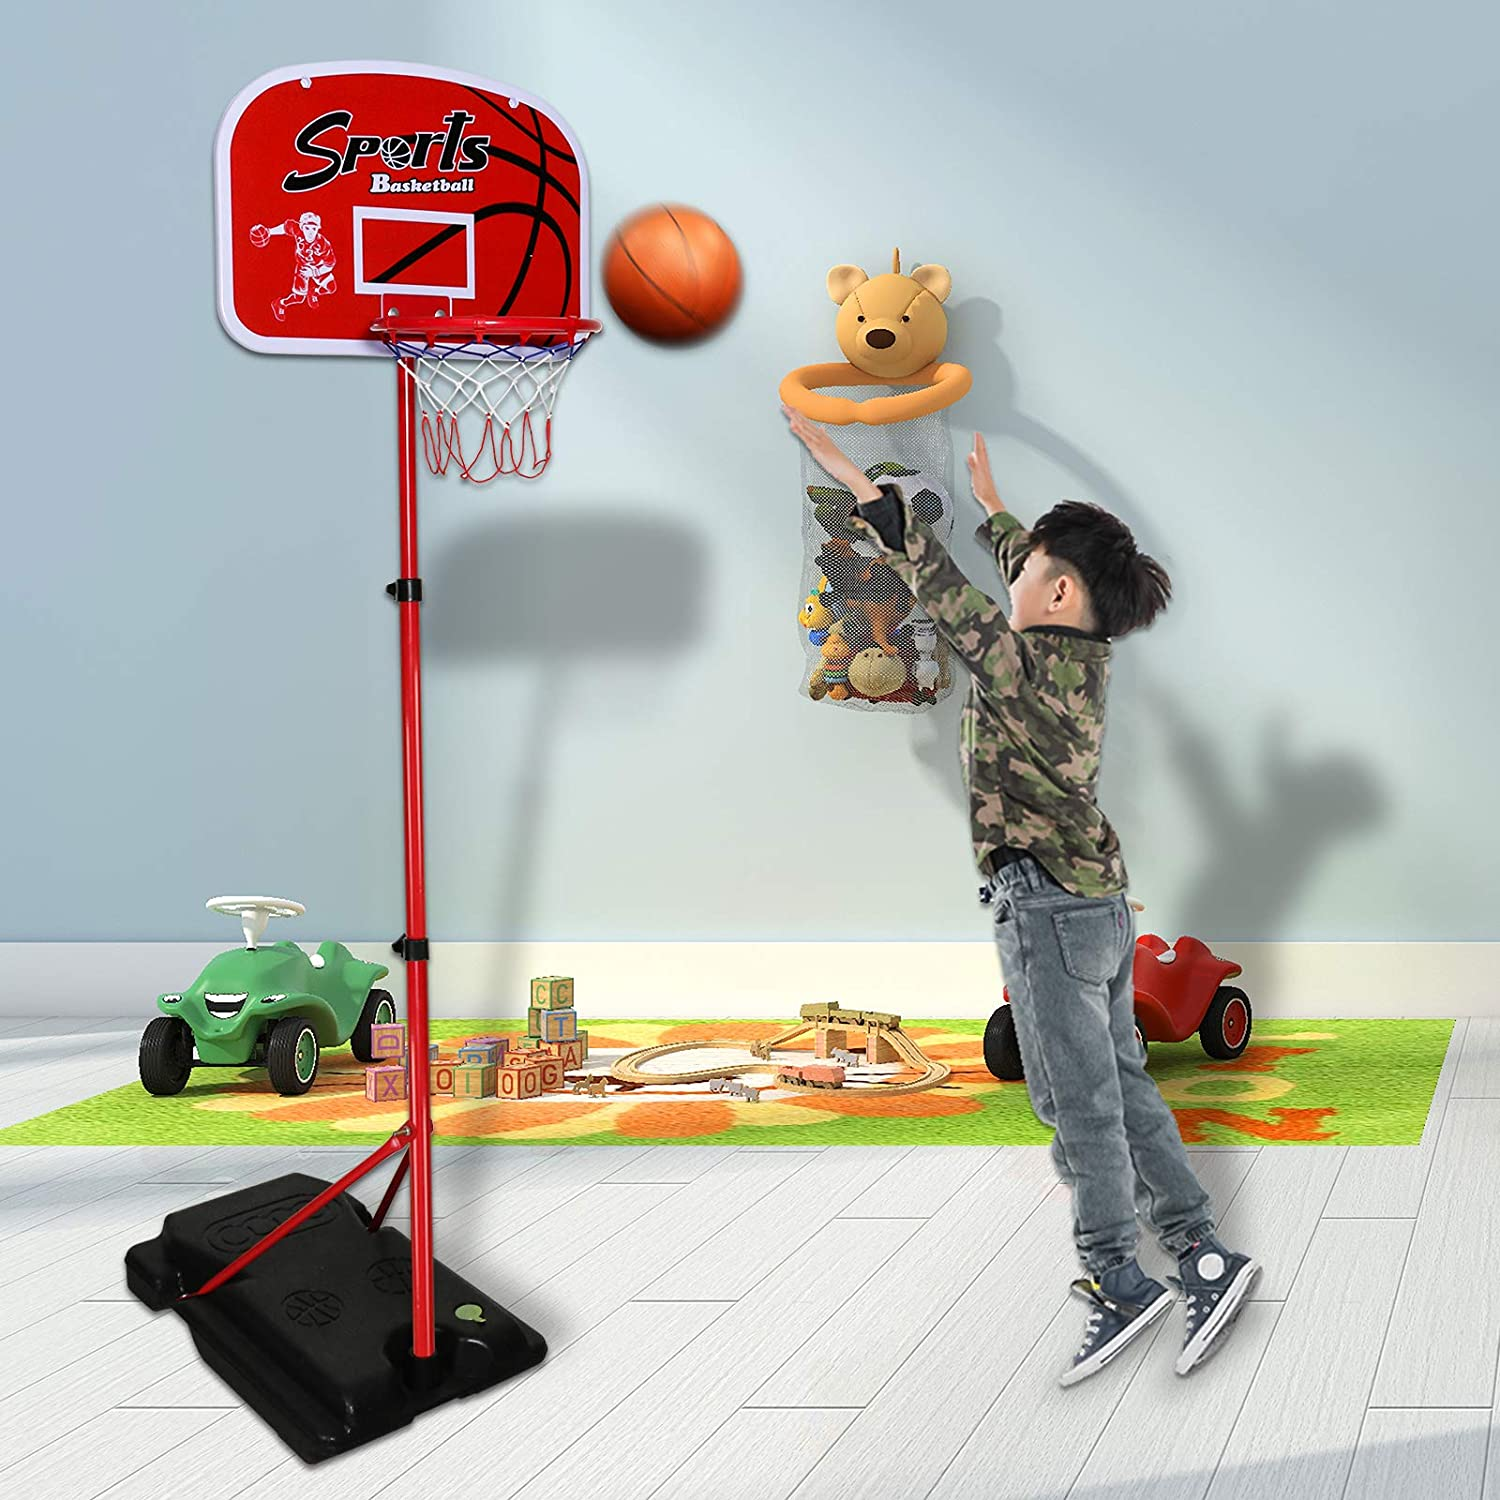 Adjustable Height 3.5 ft Kids Basketball Hoop Stand Mini Hoop Basketball Goal Gifts for Boys Girls Toddlers Age 3 4 5 6 7 8 9 10 6.5 ft Outdoor Toys Outside Backyard Games Indoor Basketball Hoop